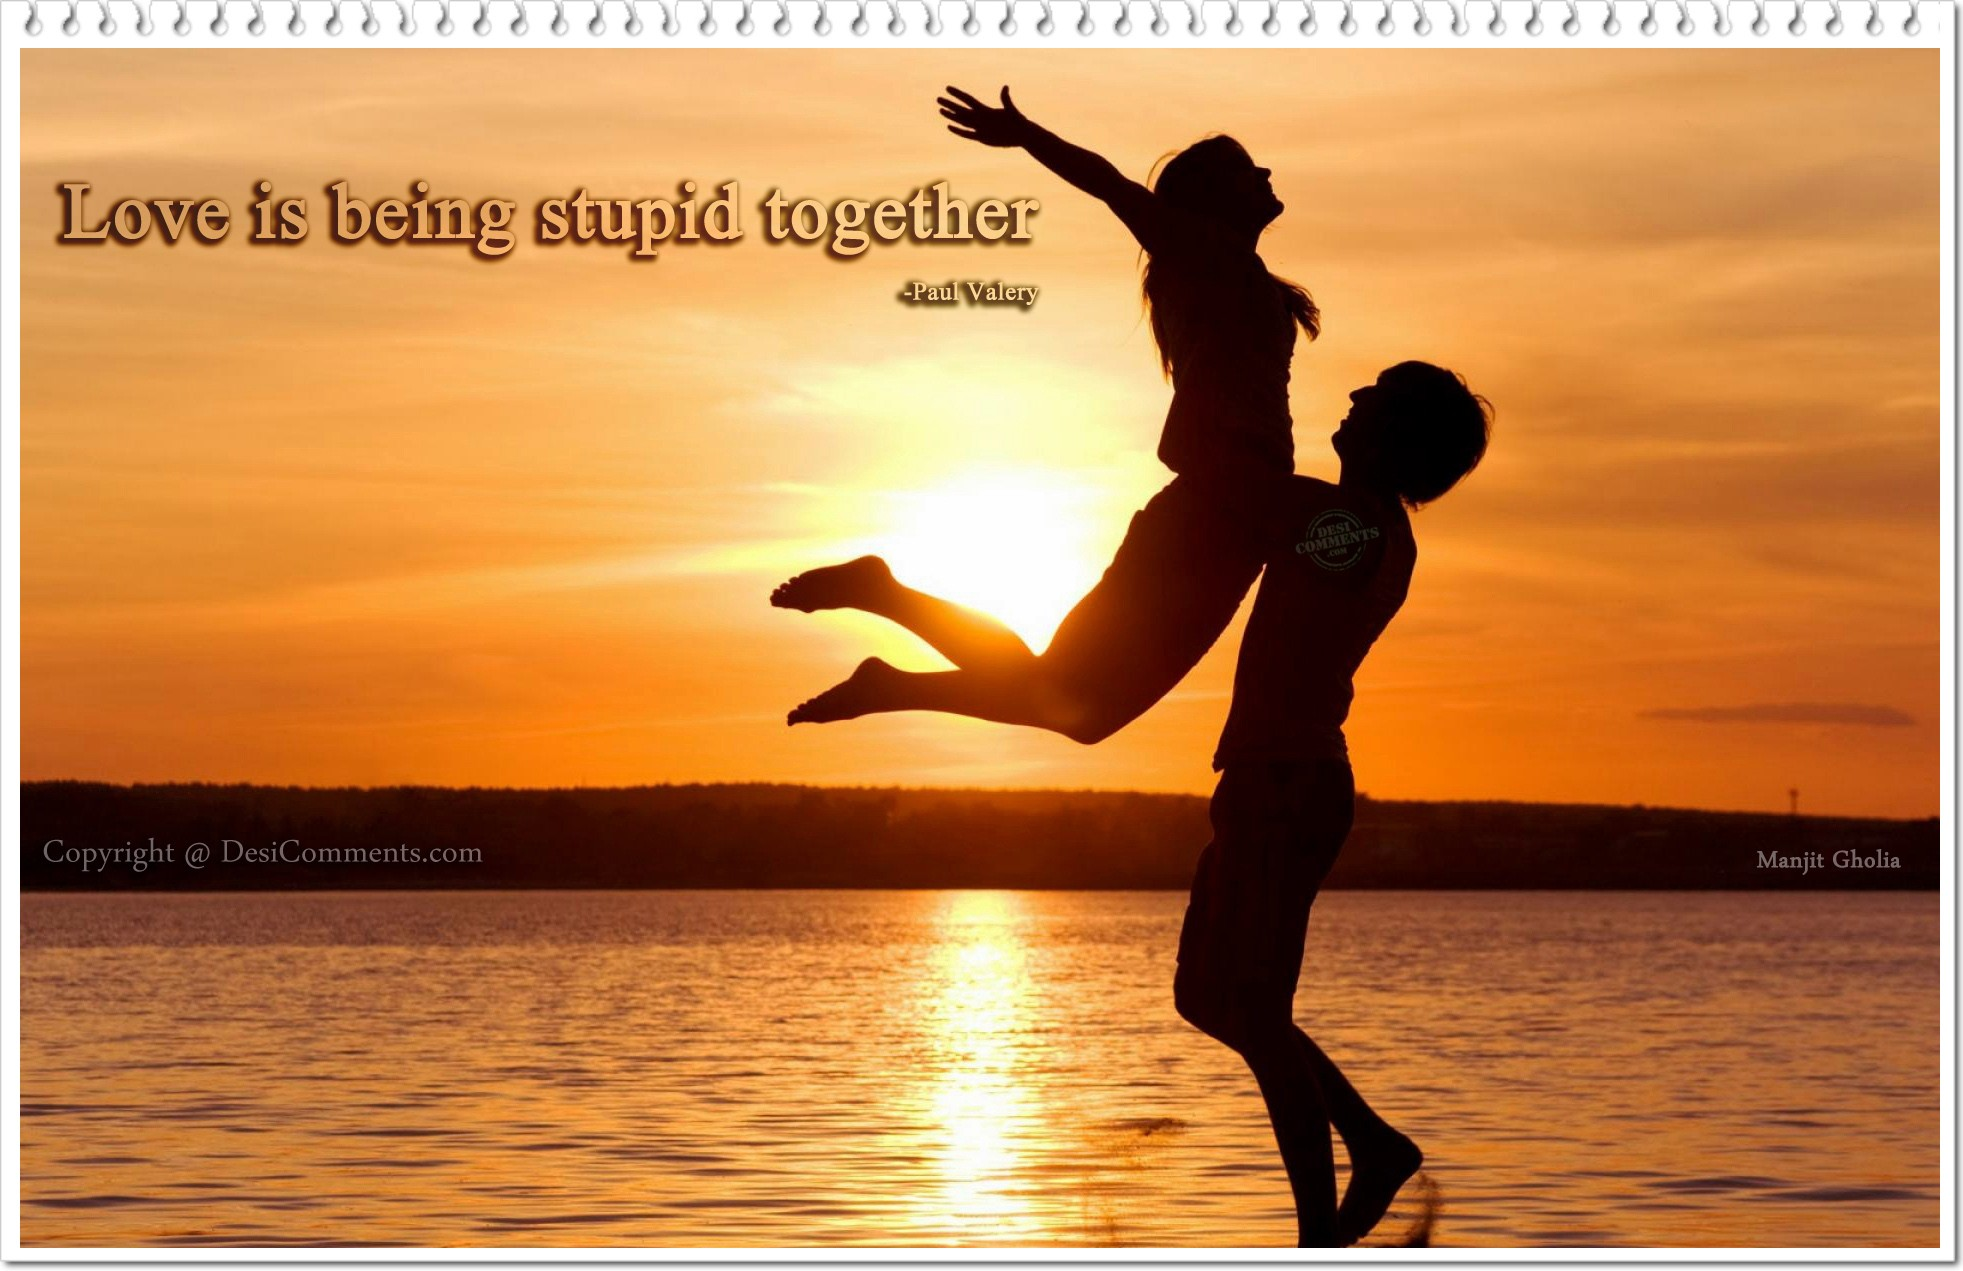 Quotes About Staying Together Love. QuotesGram